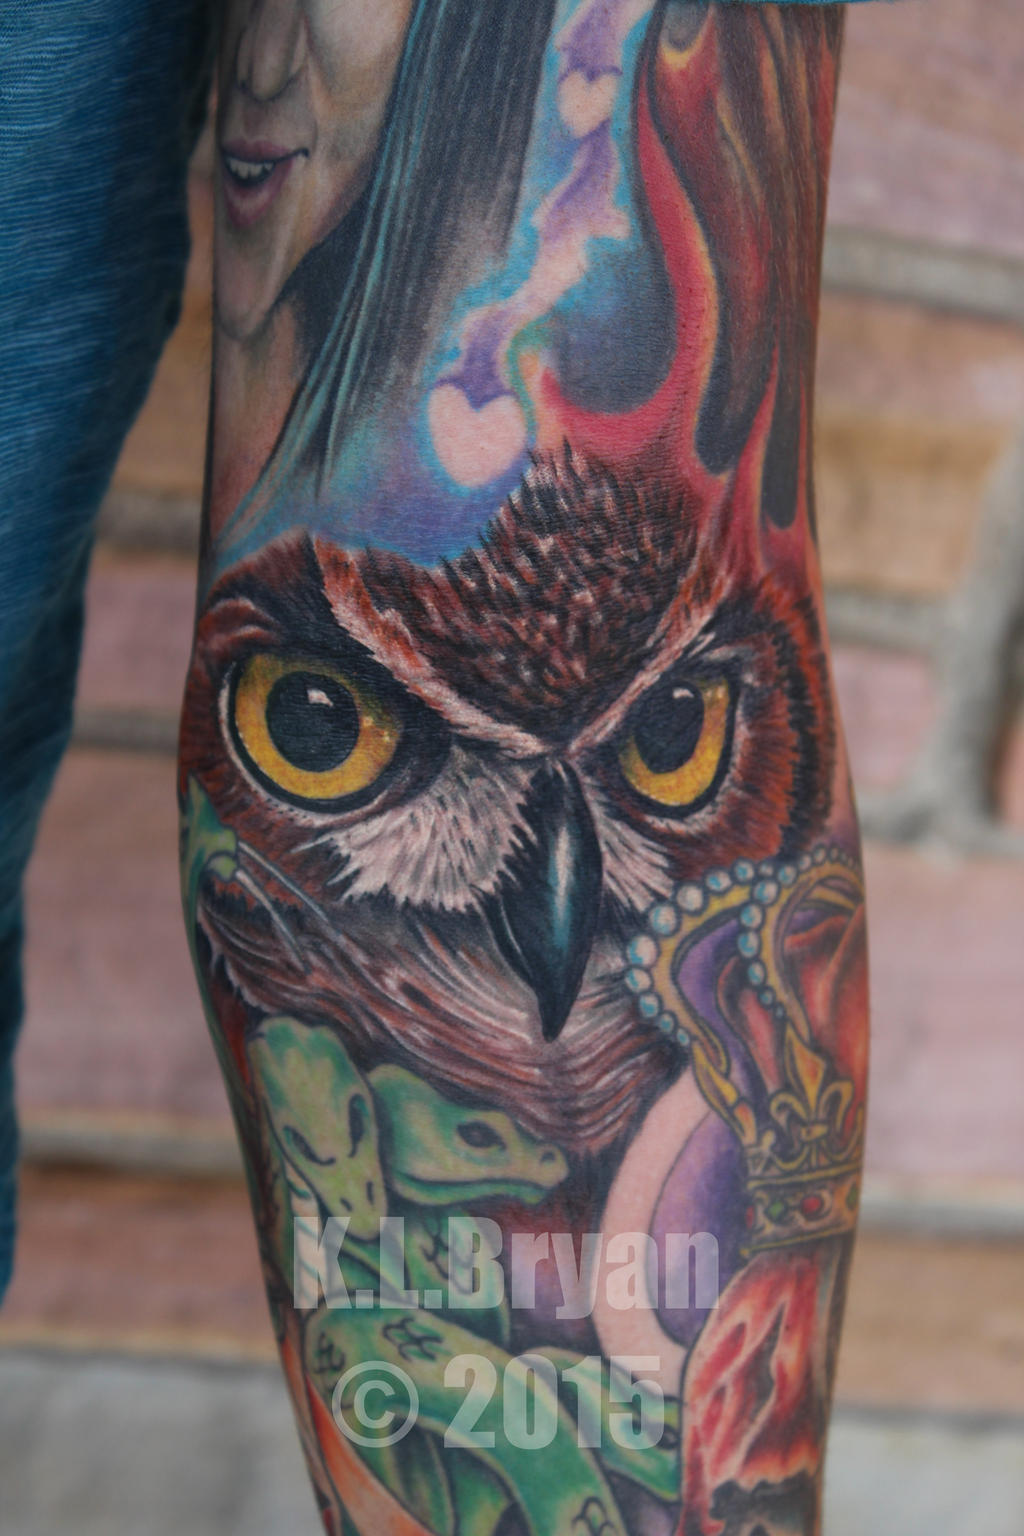 Tattoo Fillers: Owl Face Tattoo Used As Space Filler For Sleeve By Danktat